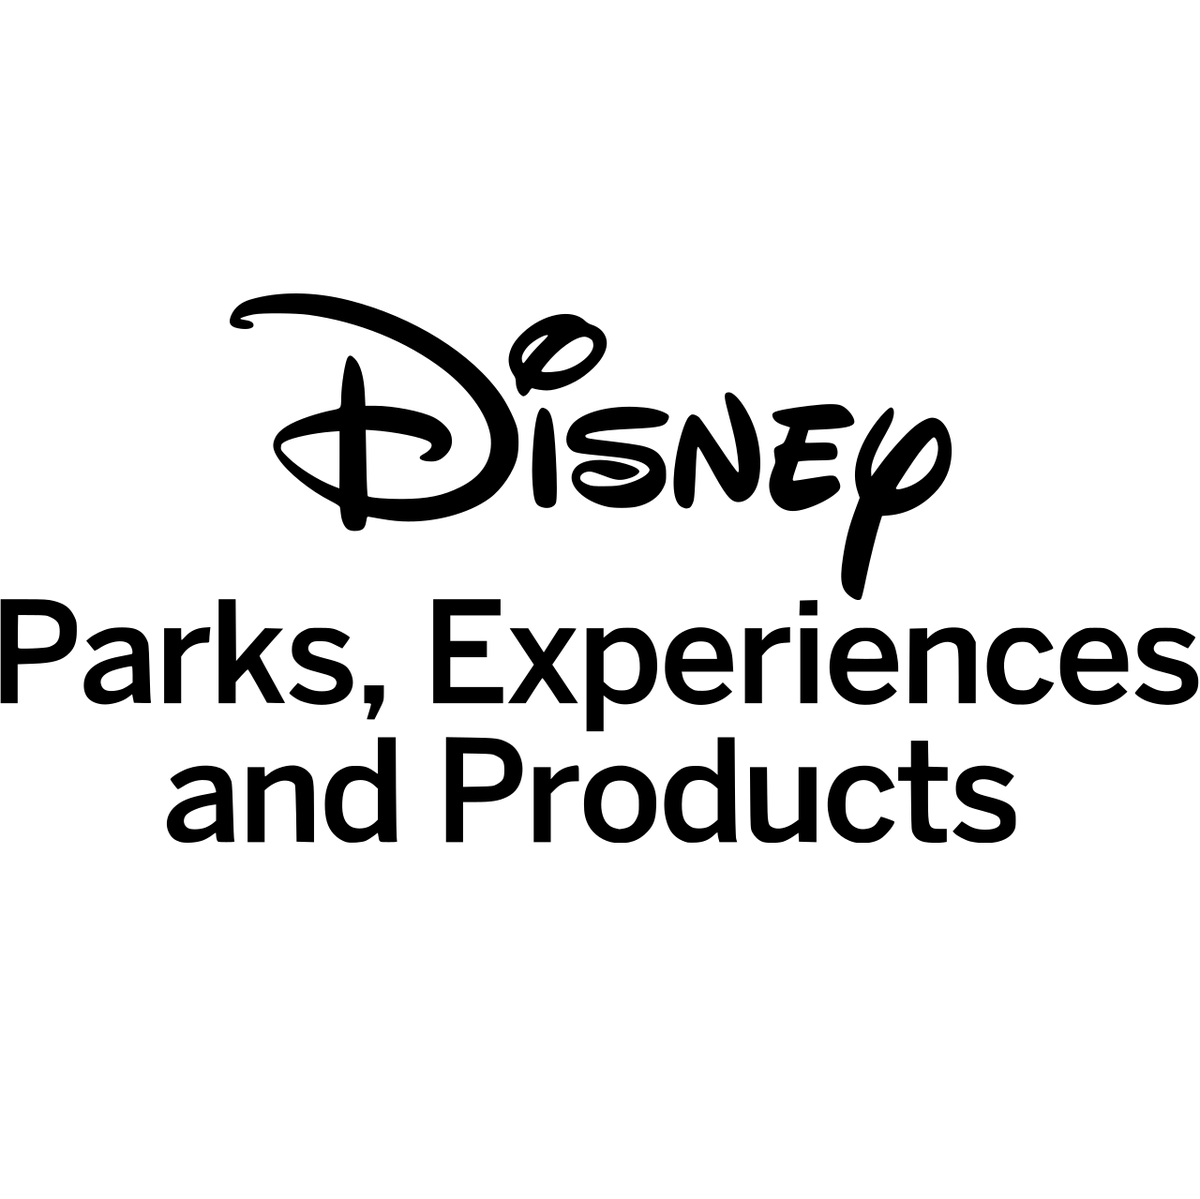 Job Opportunity  Zoological Manager – The Living Seas at The Walt Disney Company - Parks, Experiences and Products; Lake Buena Vista, Florida, USA  #LoveYourVeterinaryCareer #Disney #LivingSeas #ZoologicalManager